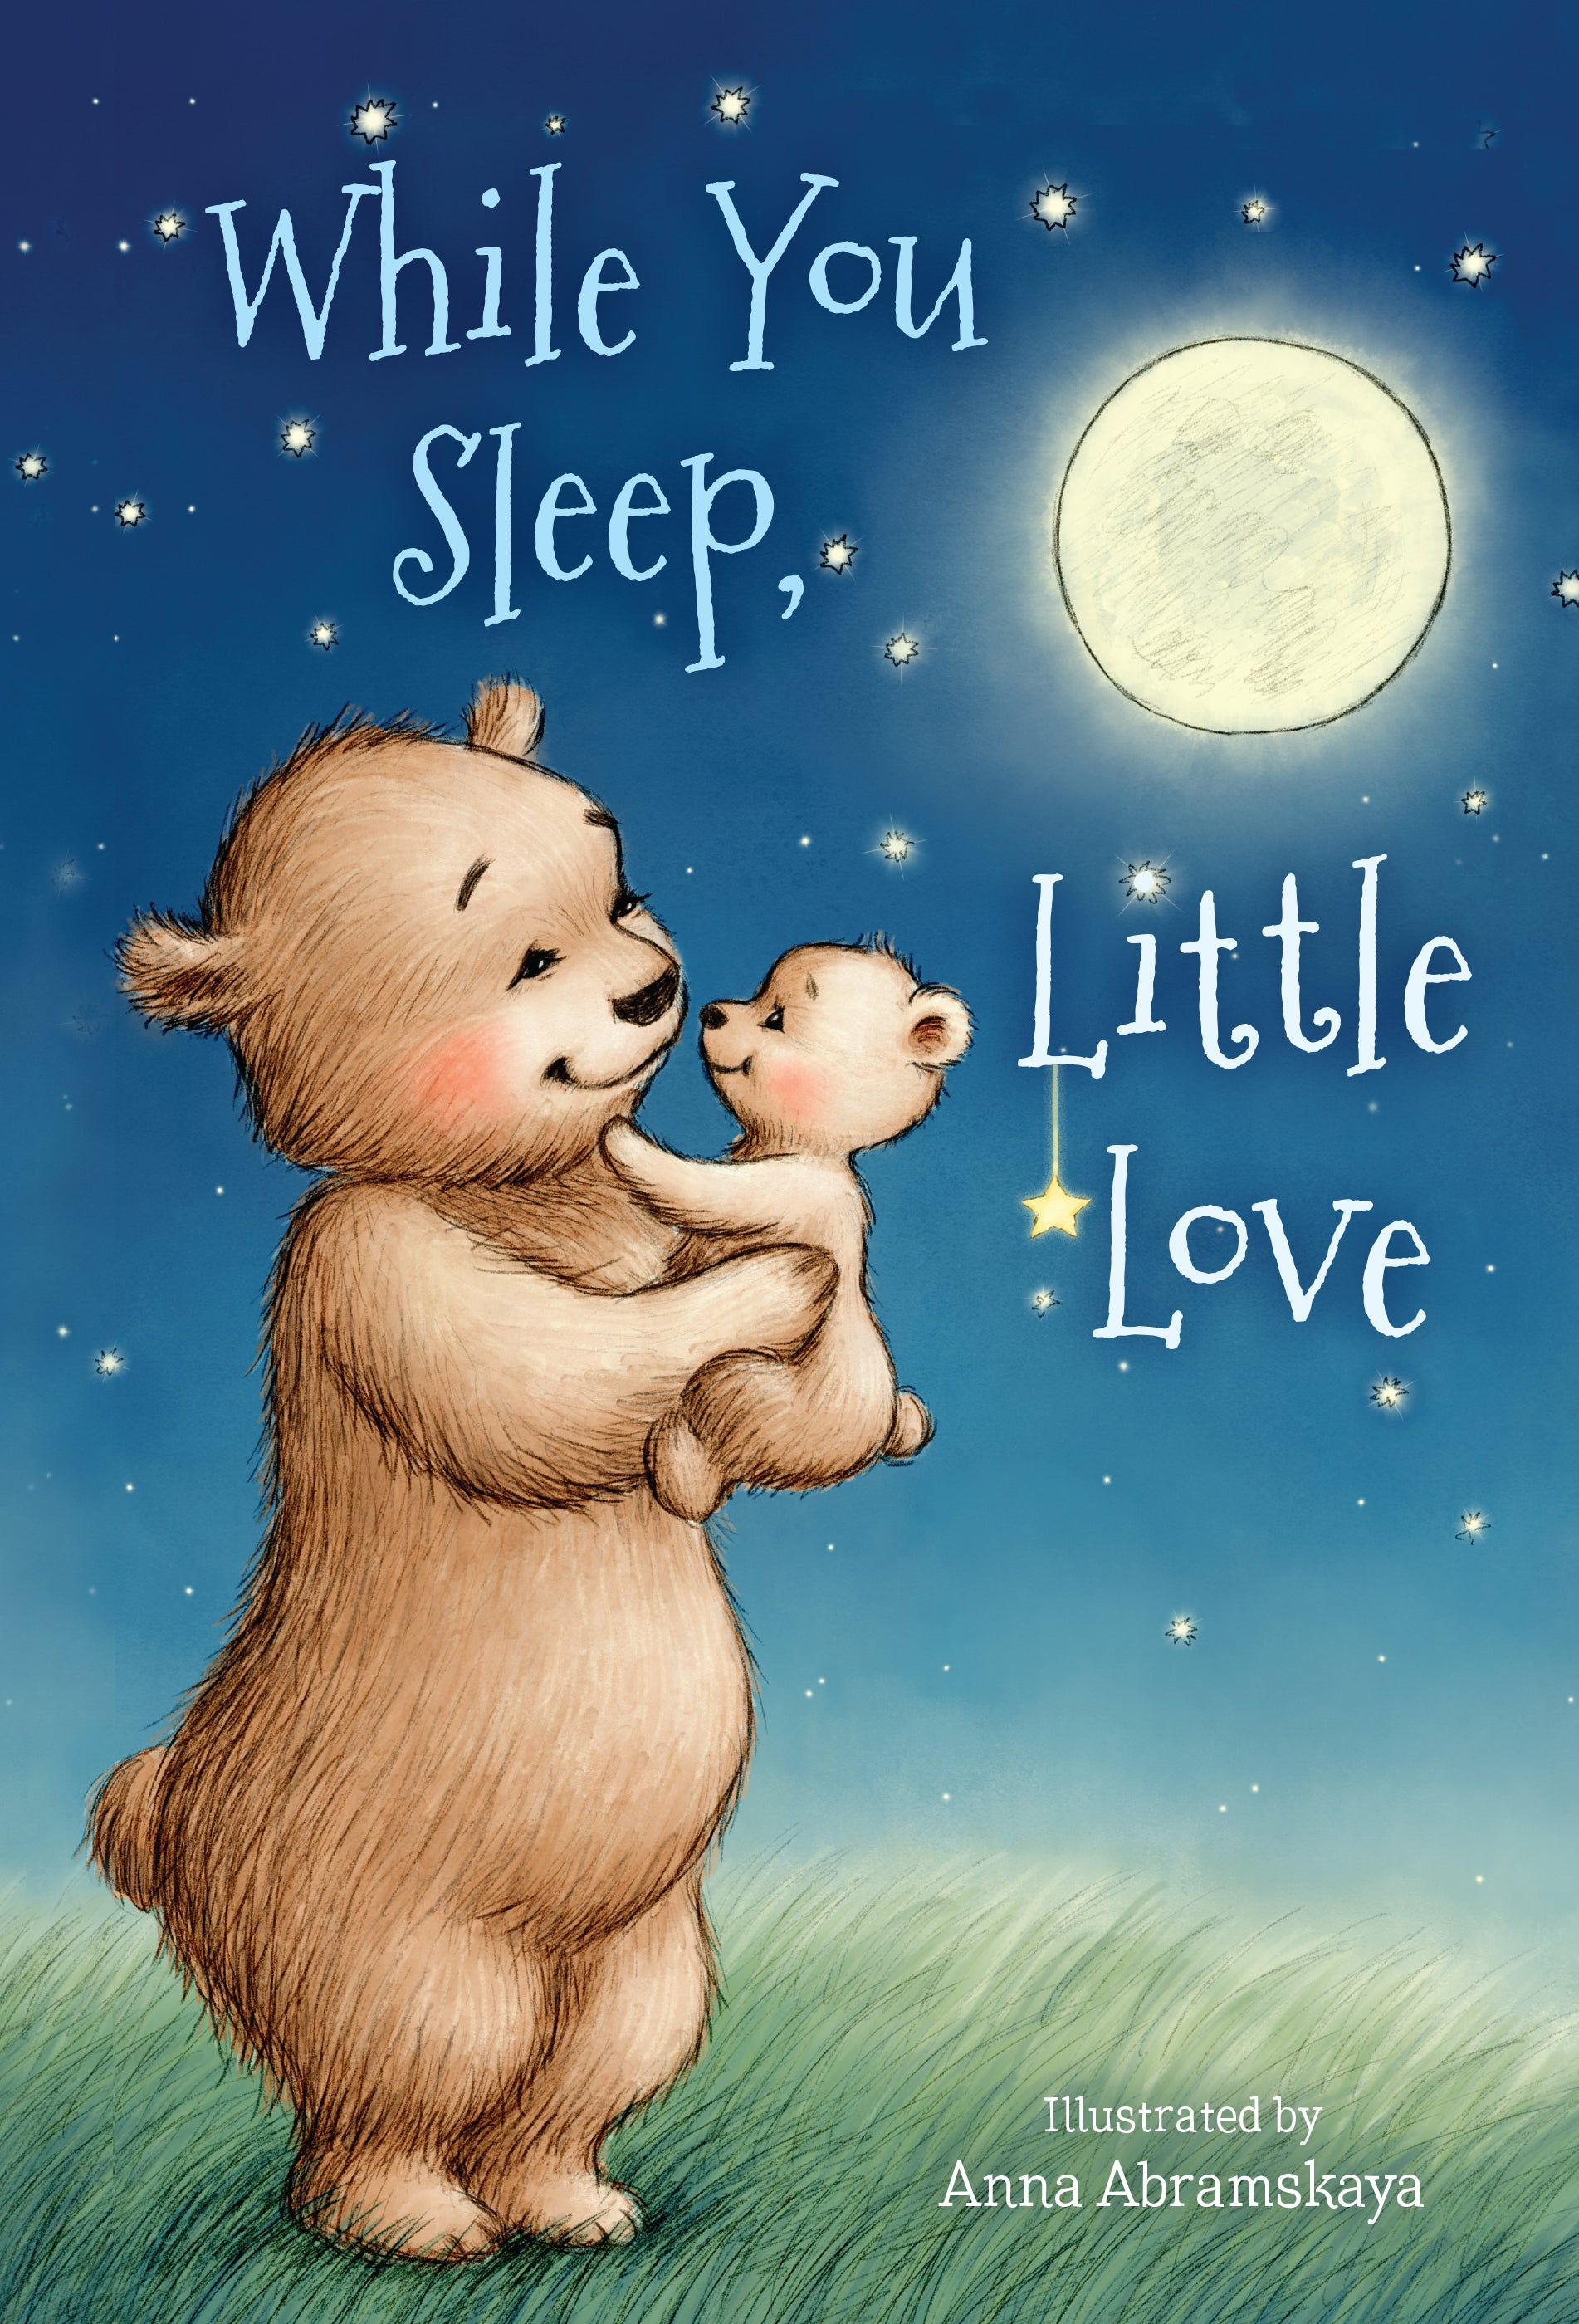 While You Sleep  Little Love (Padded Board Book)